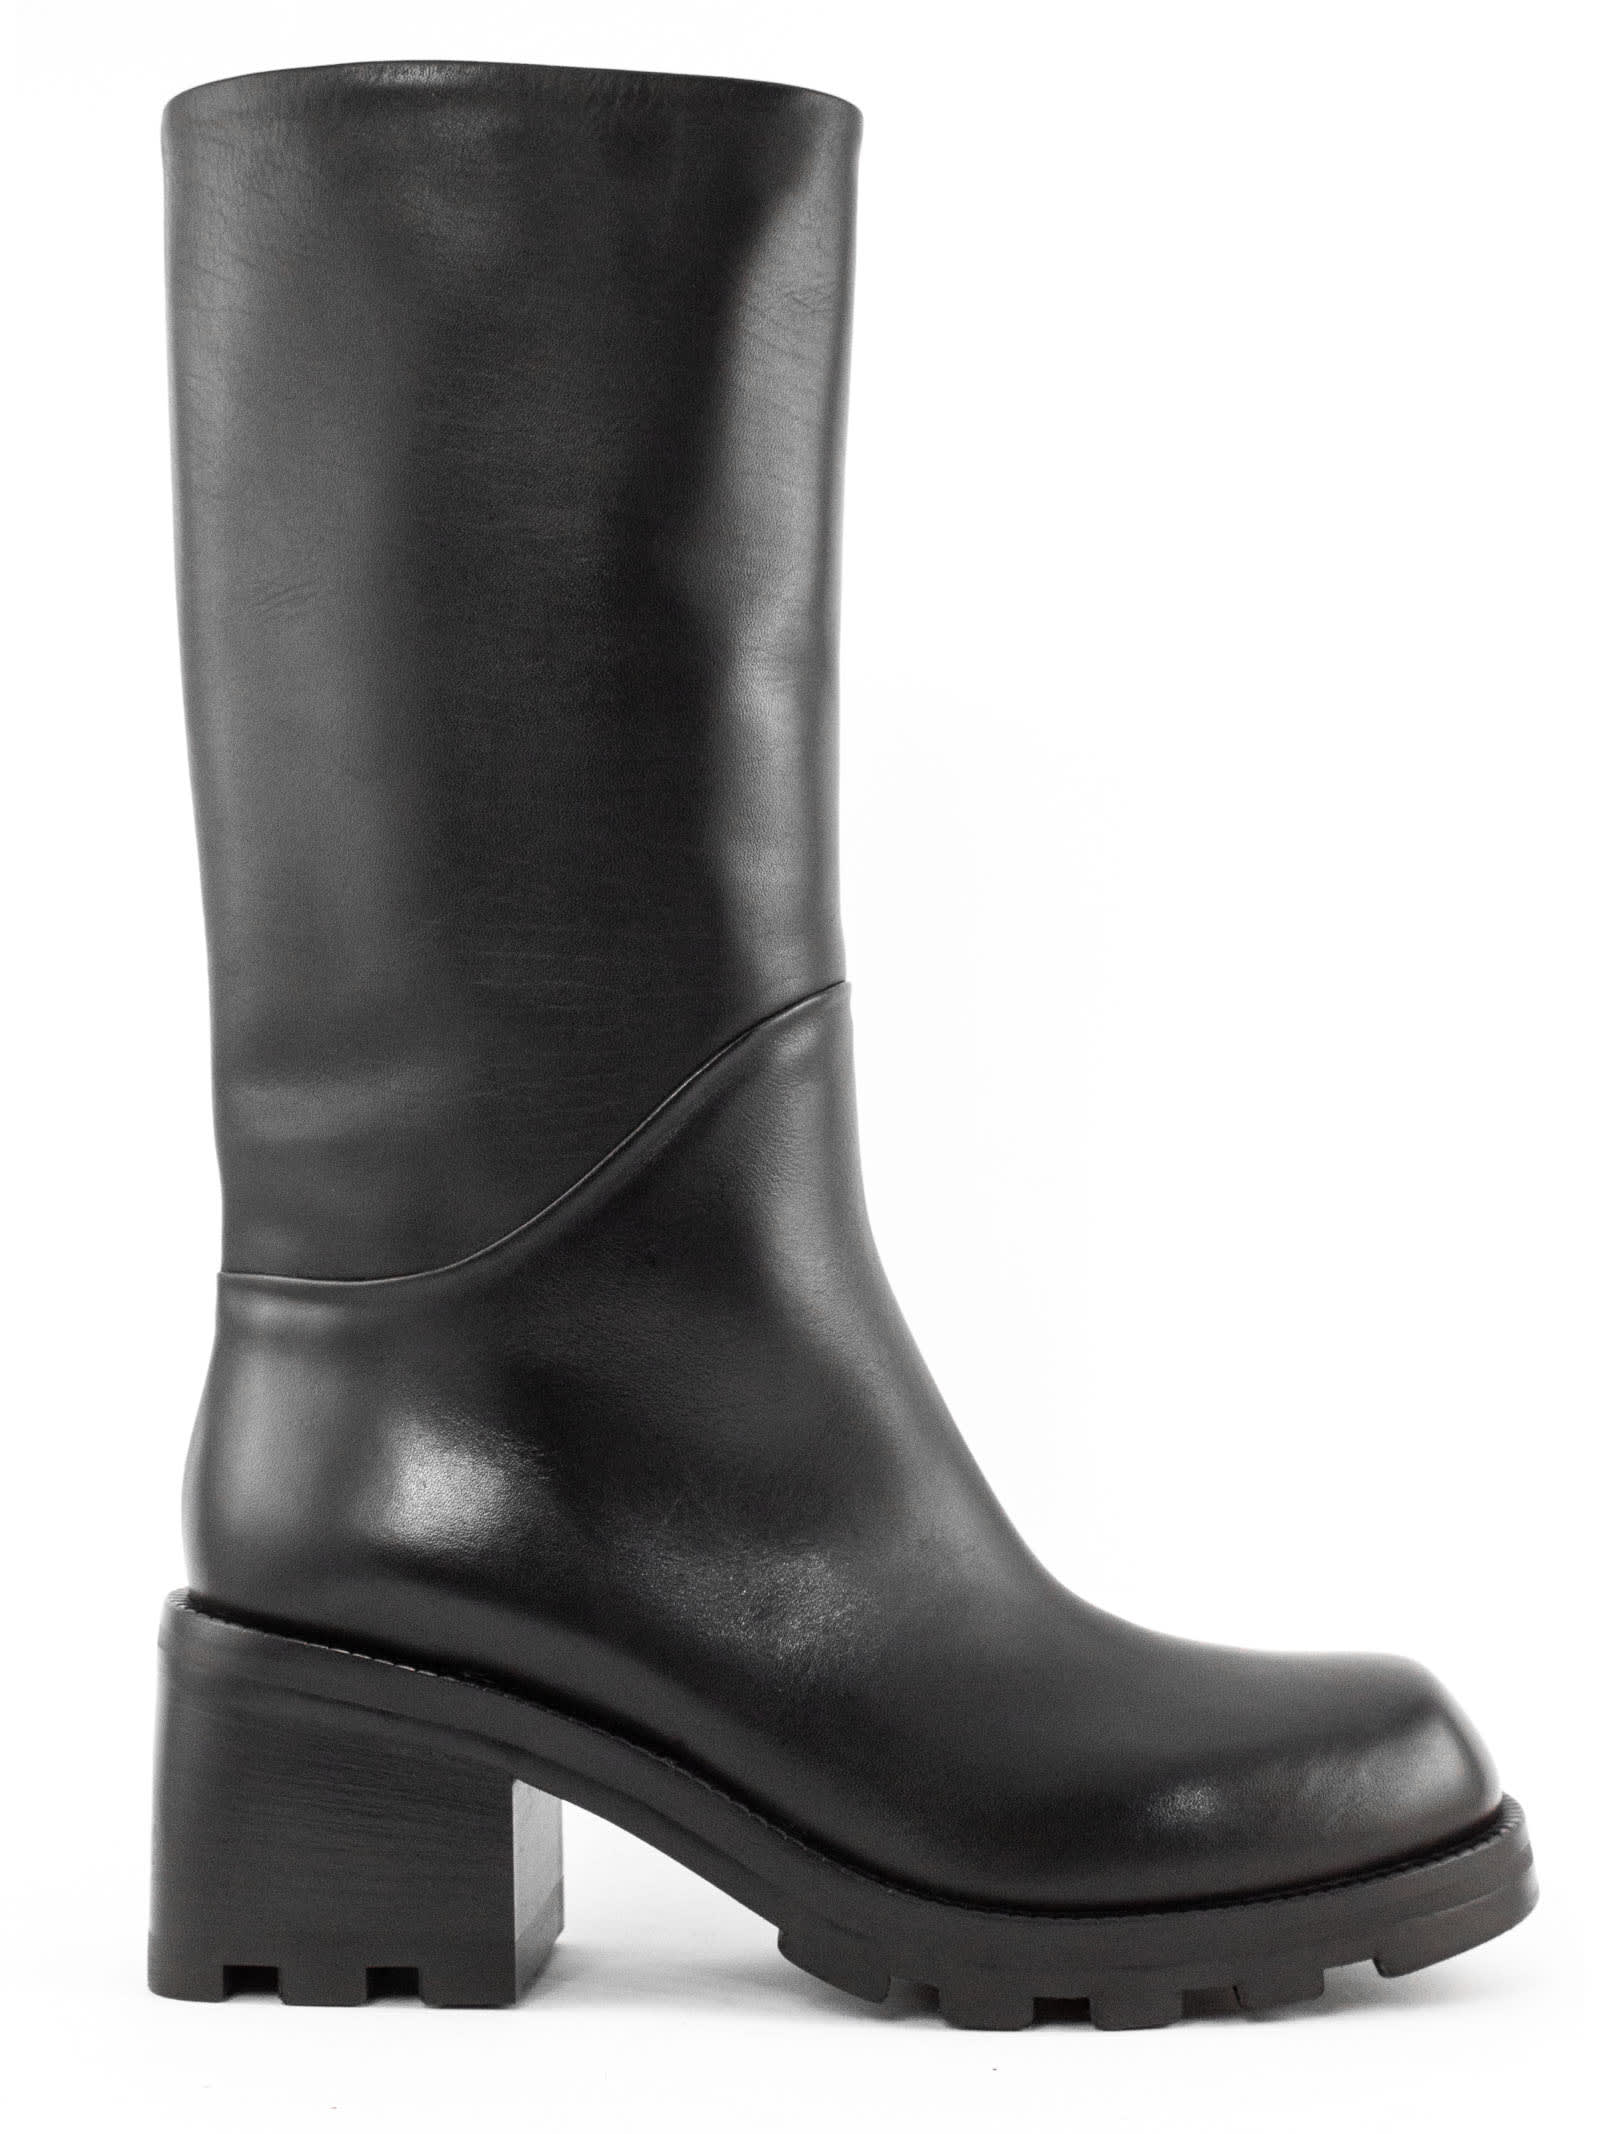 Boot In Black Leather